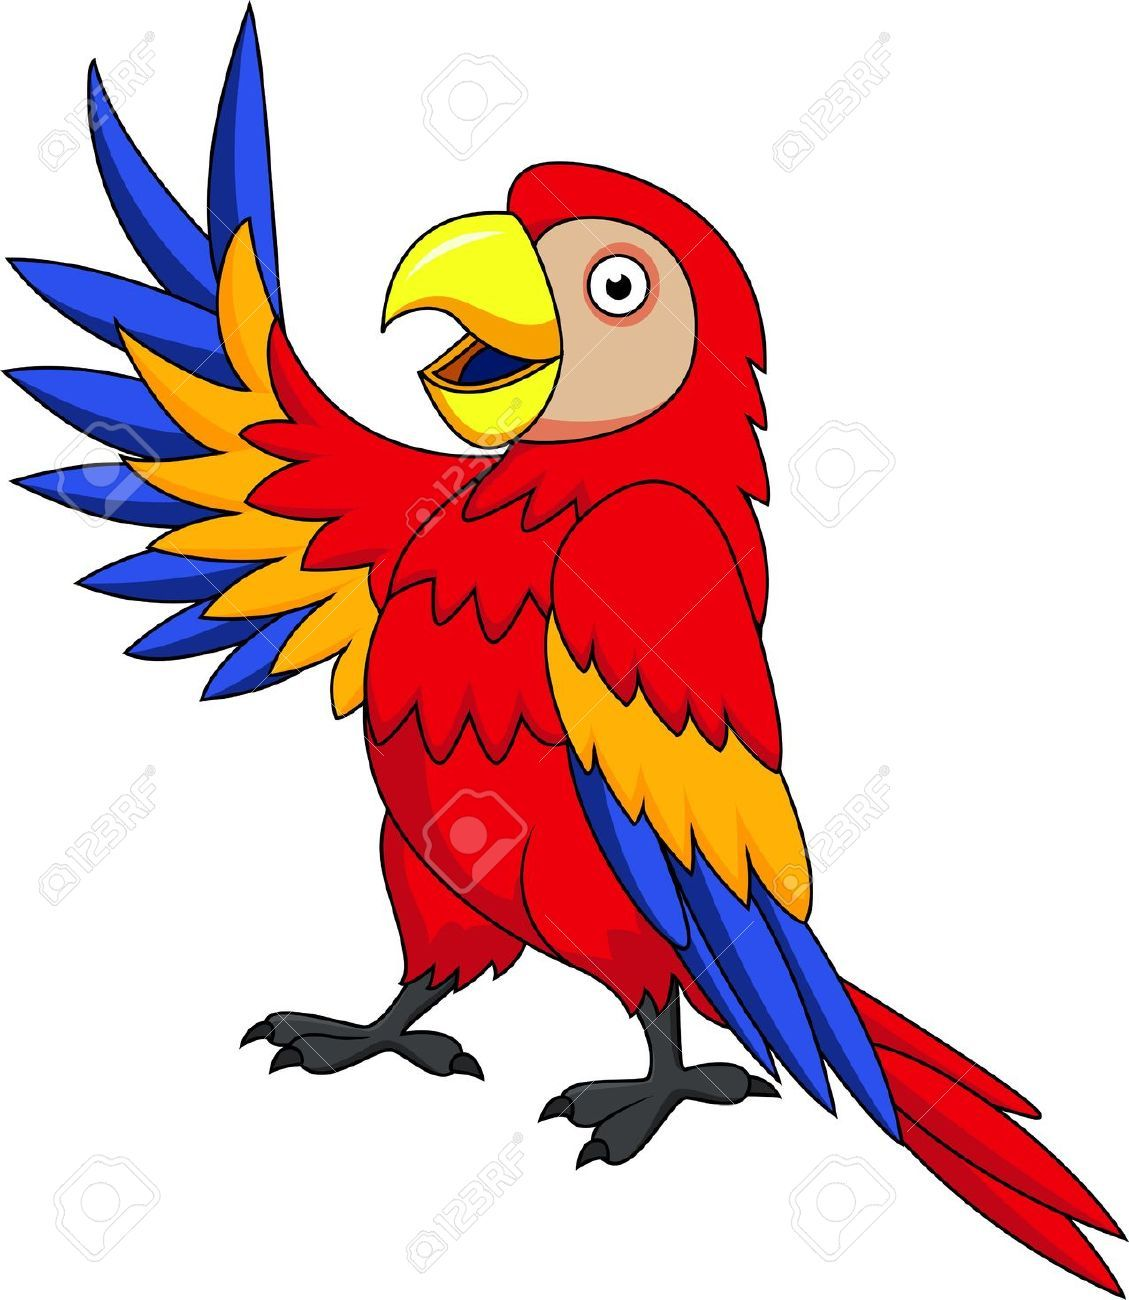 png free stock Google search animals image. Parrot clipart